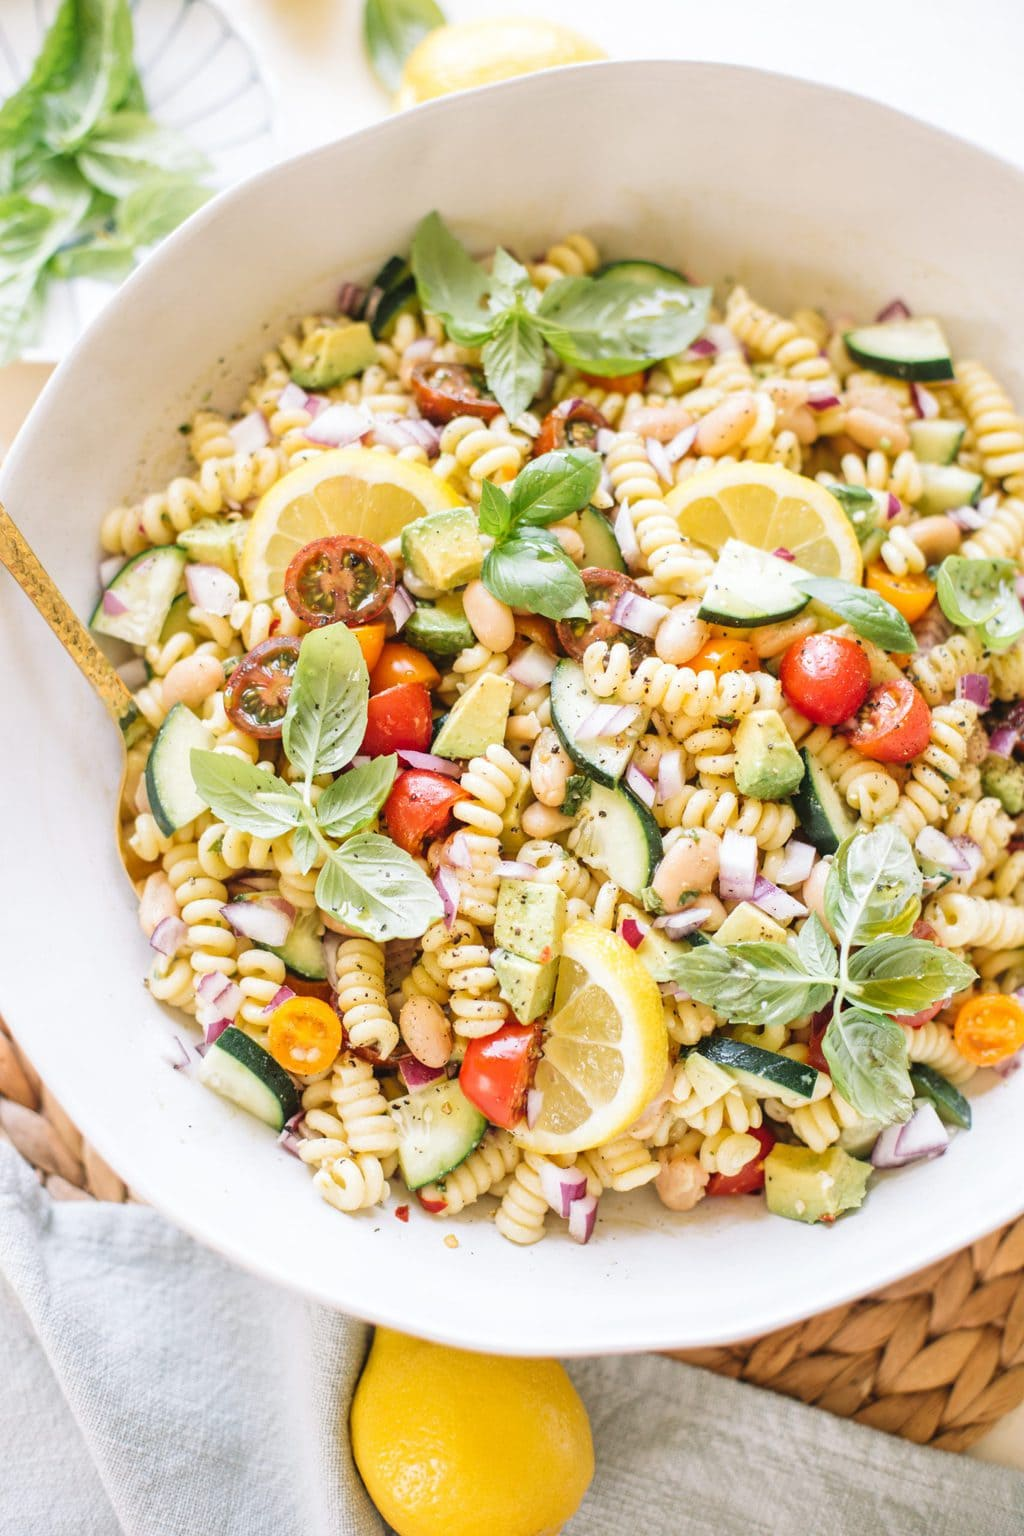 easy pasta salad with beans, avocado, cucumbers, tomatoes, basil in white bowl